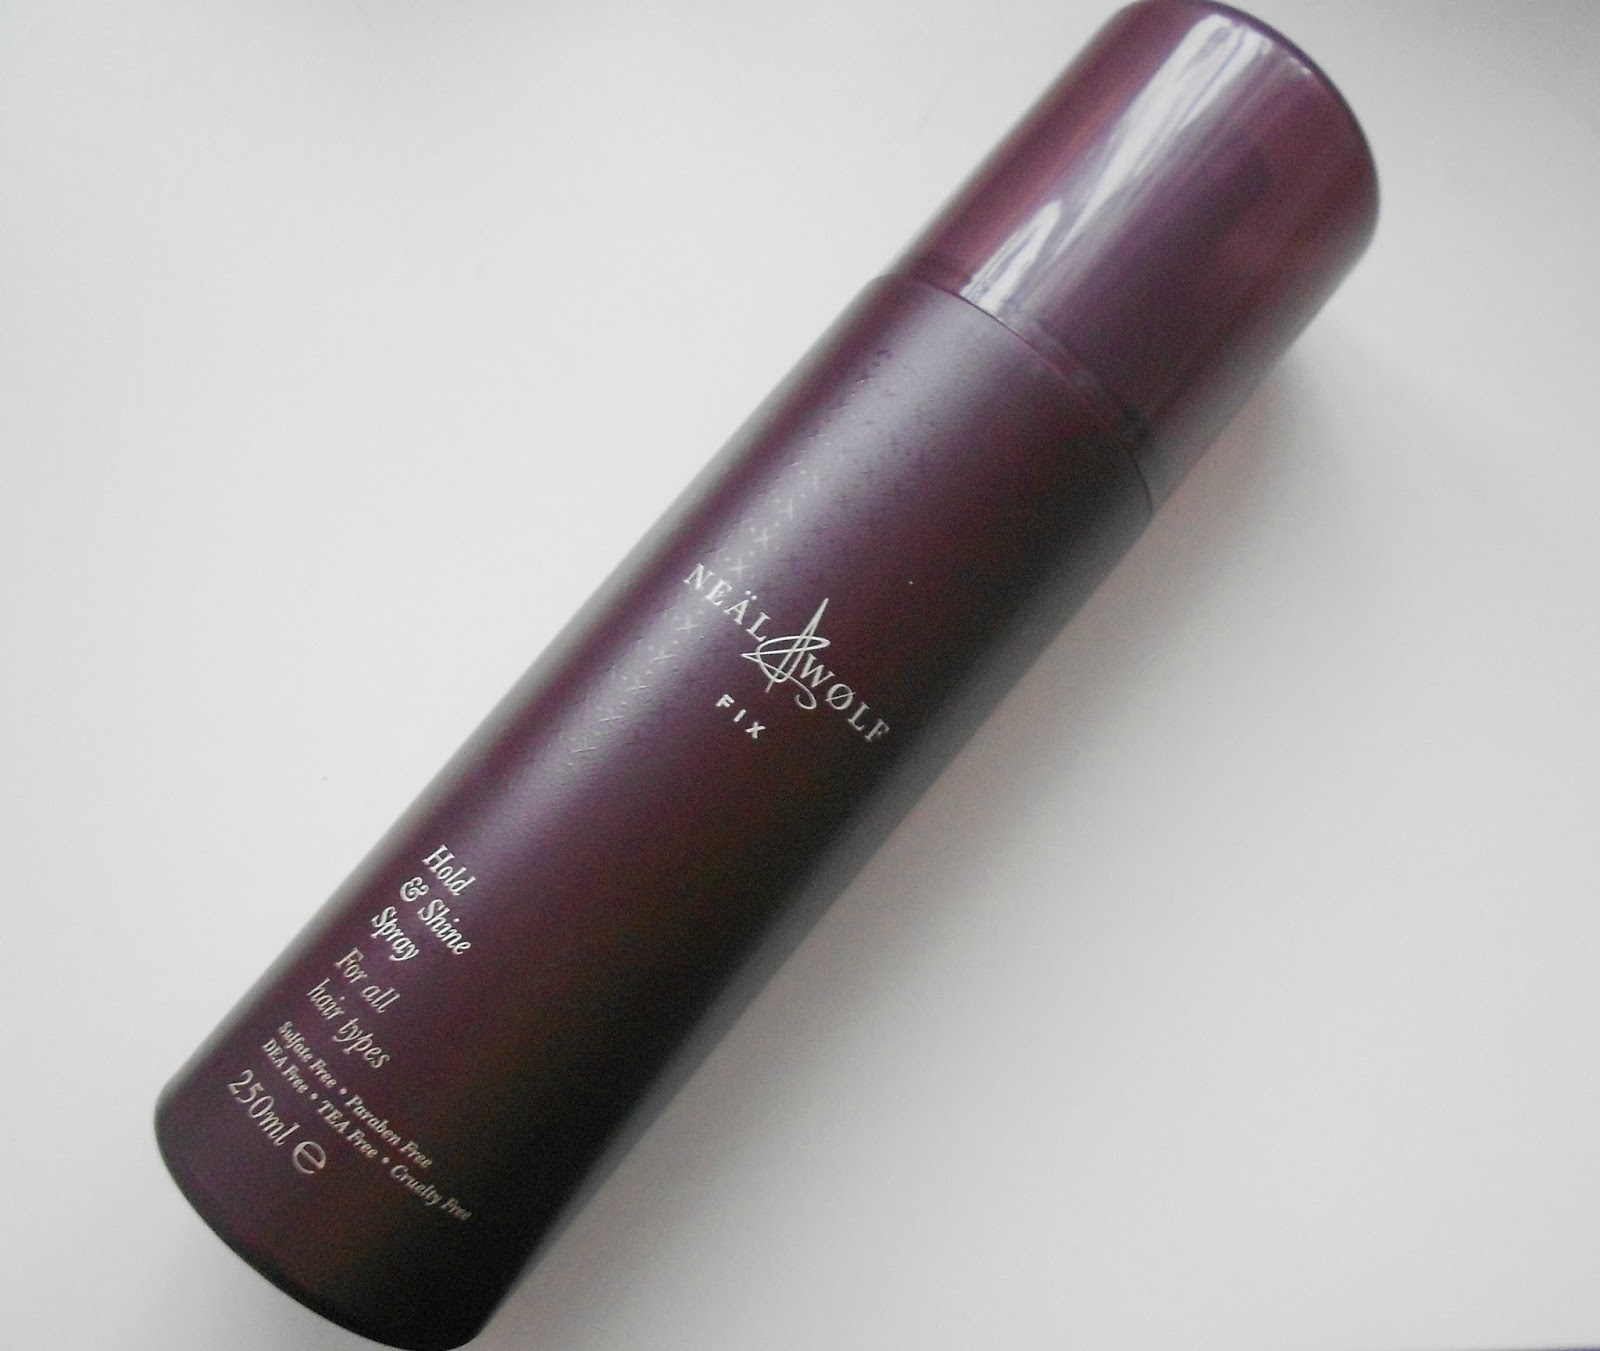 Fix neal and wolf hold and shine spray review